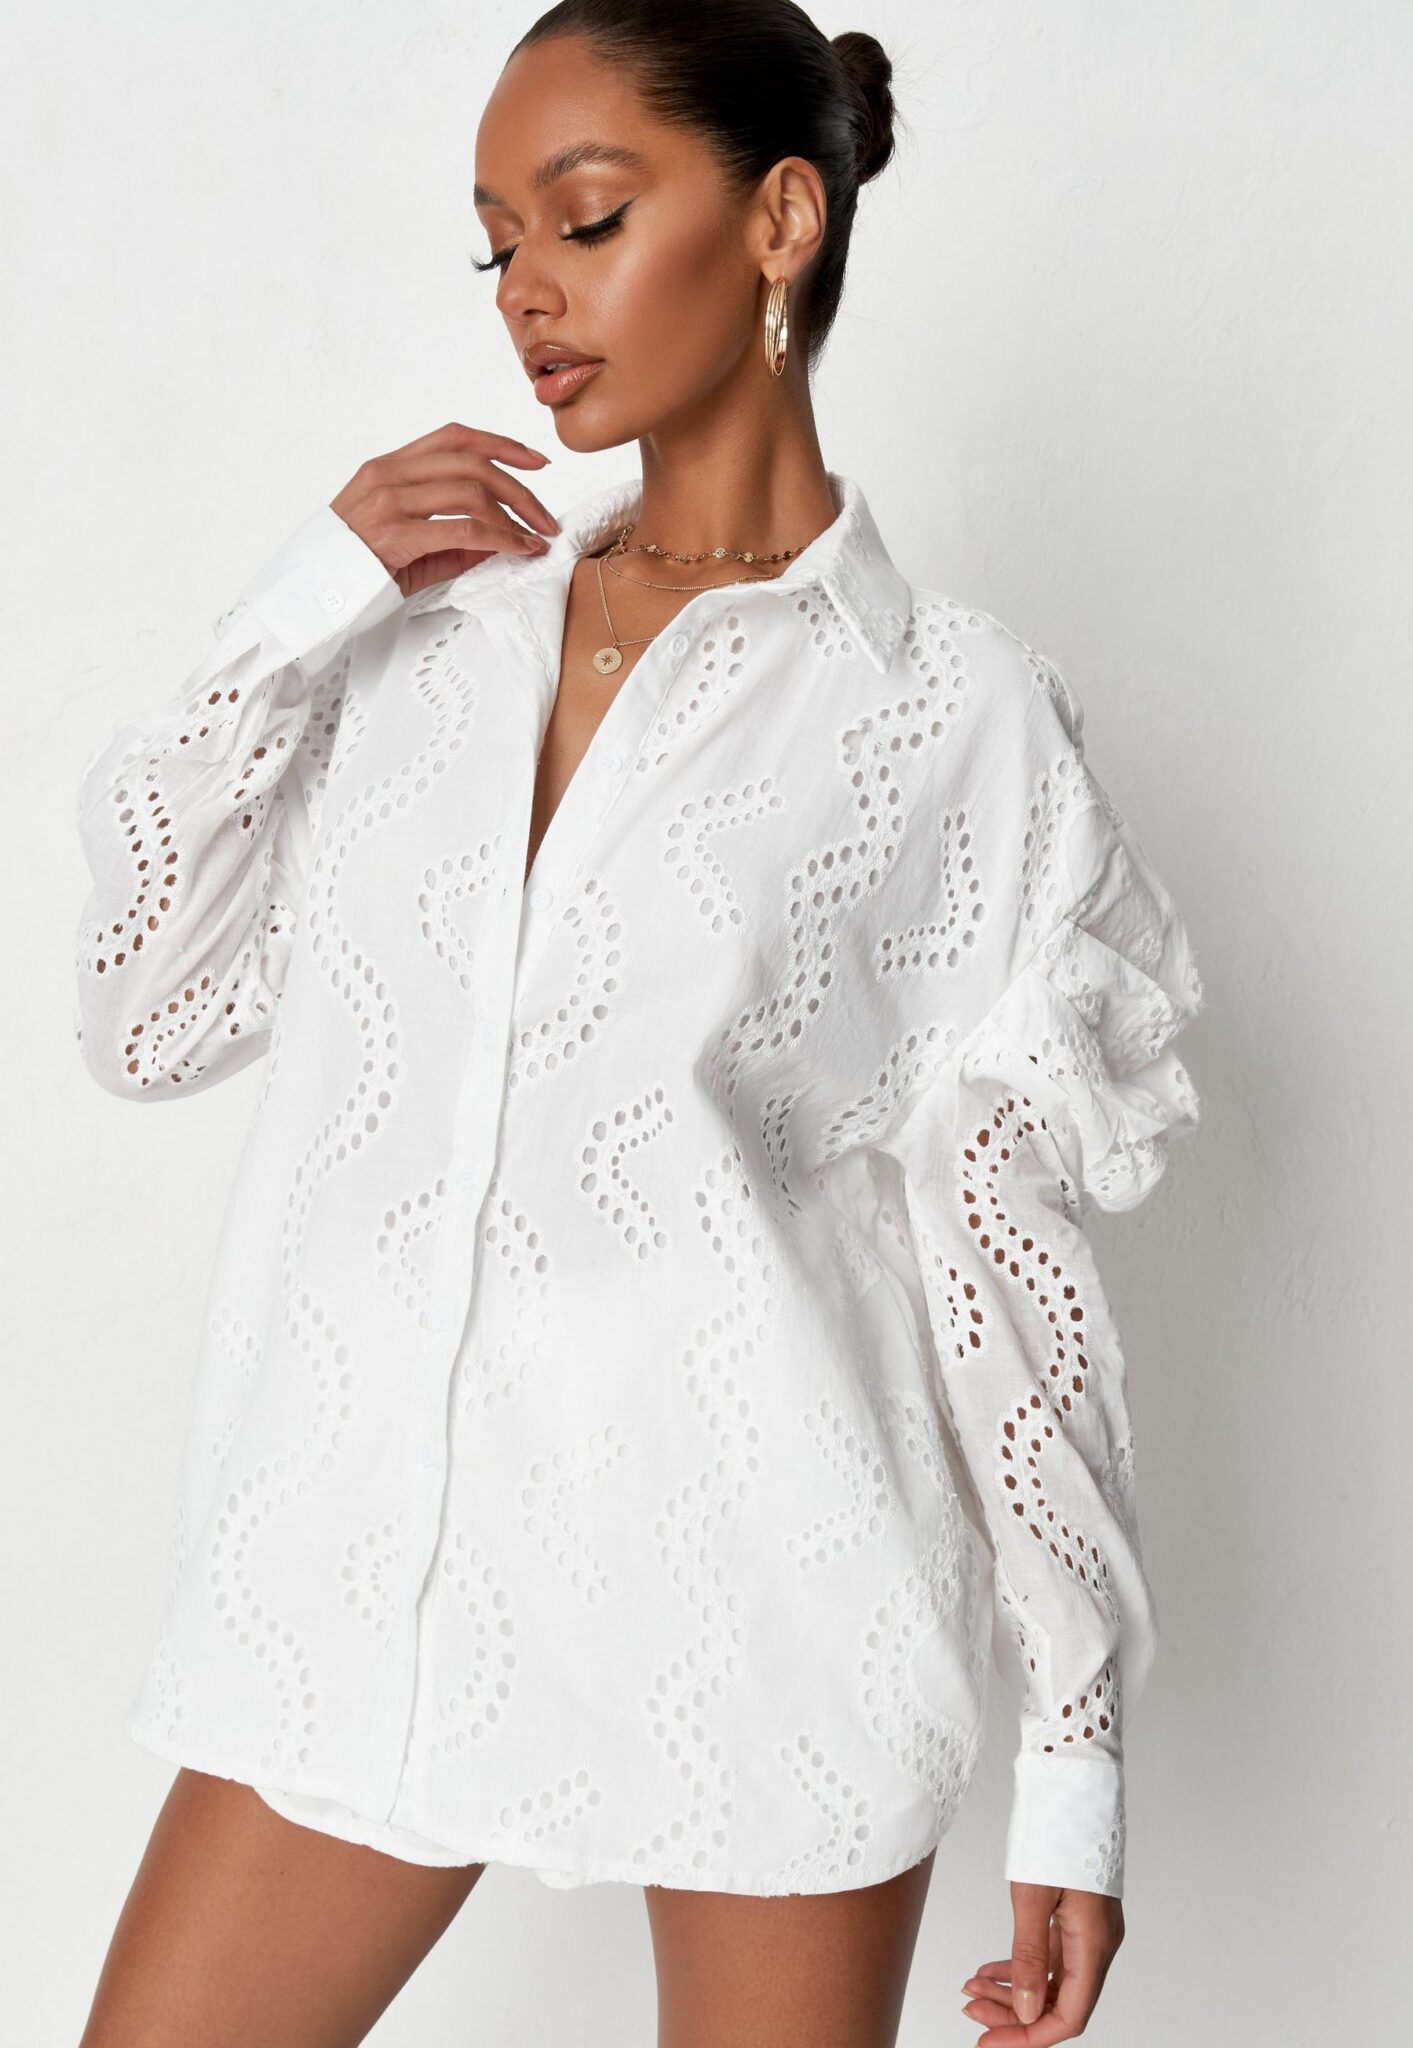 white broderie puff shoulder oversized shirt $39.00